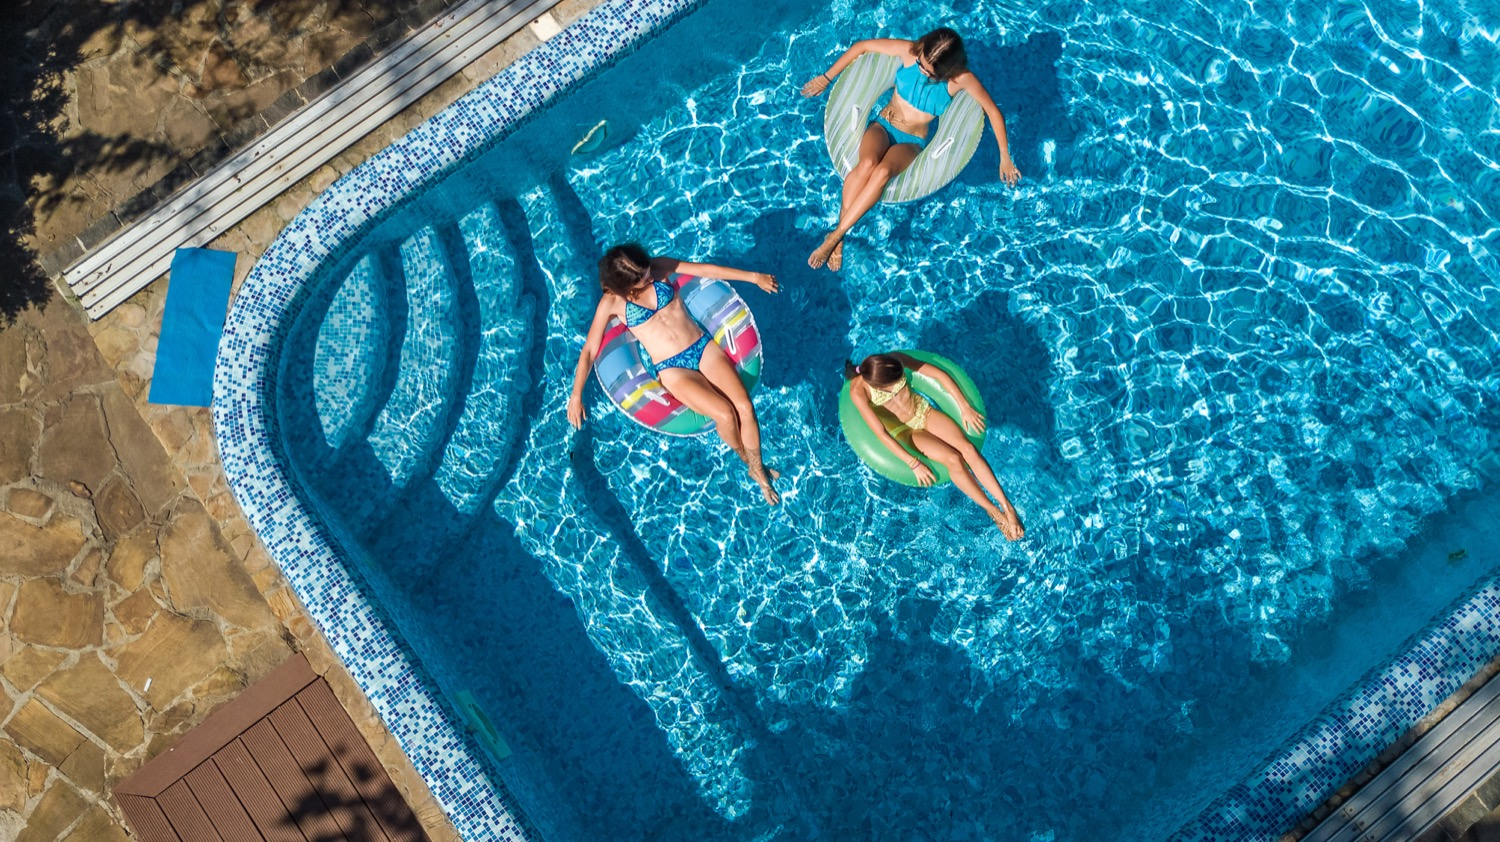 Three girls relaxing on inflatable floaties in a pool.